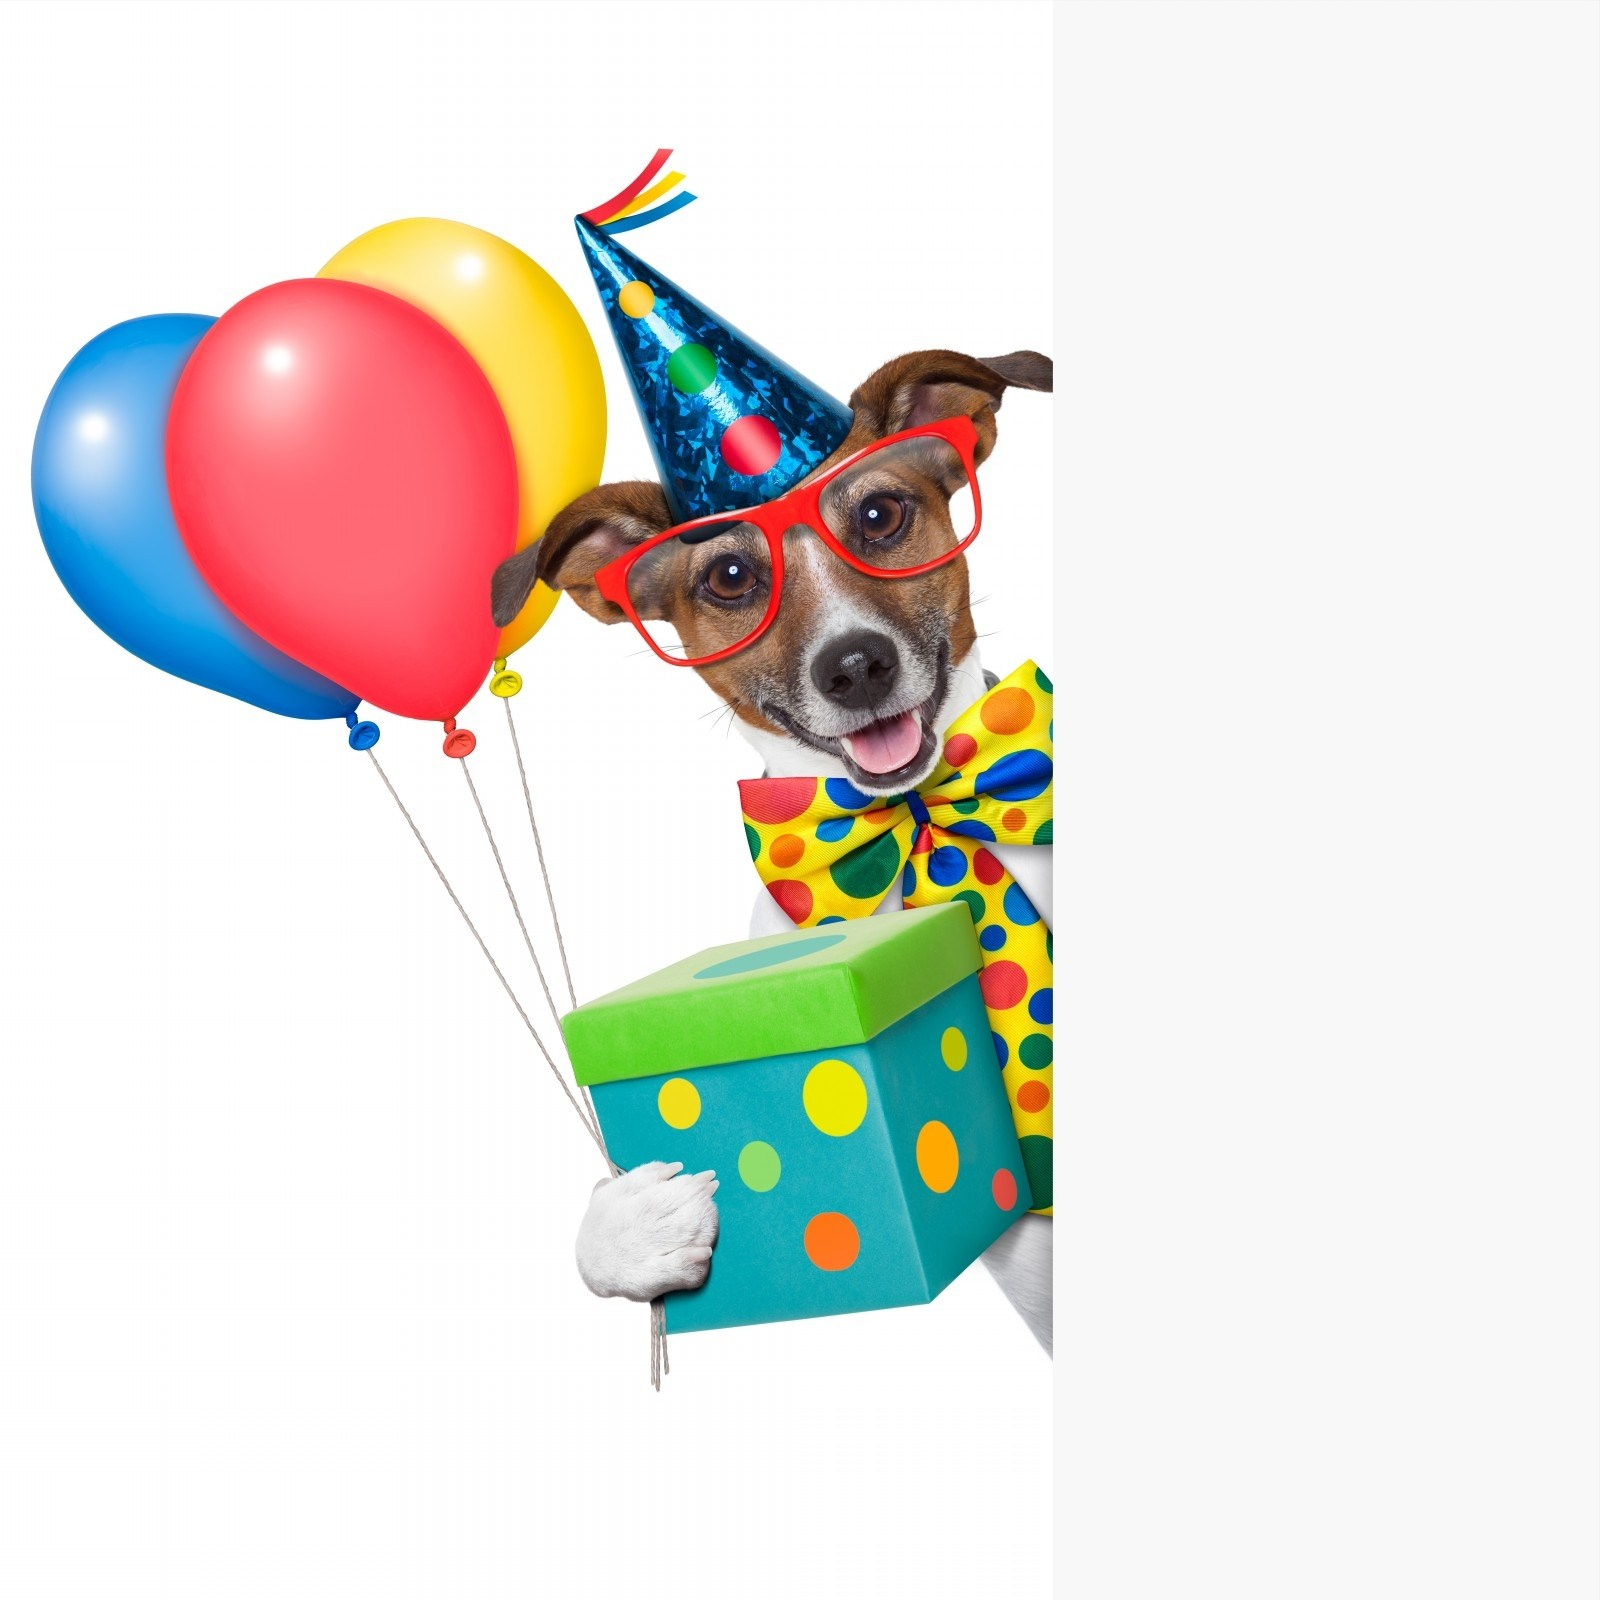 Dog birthday clipart 7 » Clipart Portal.